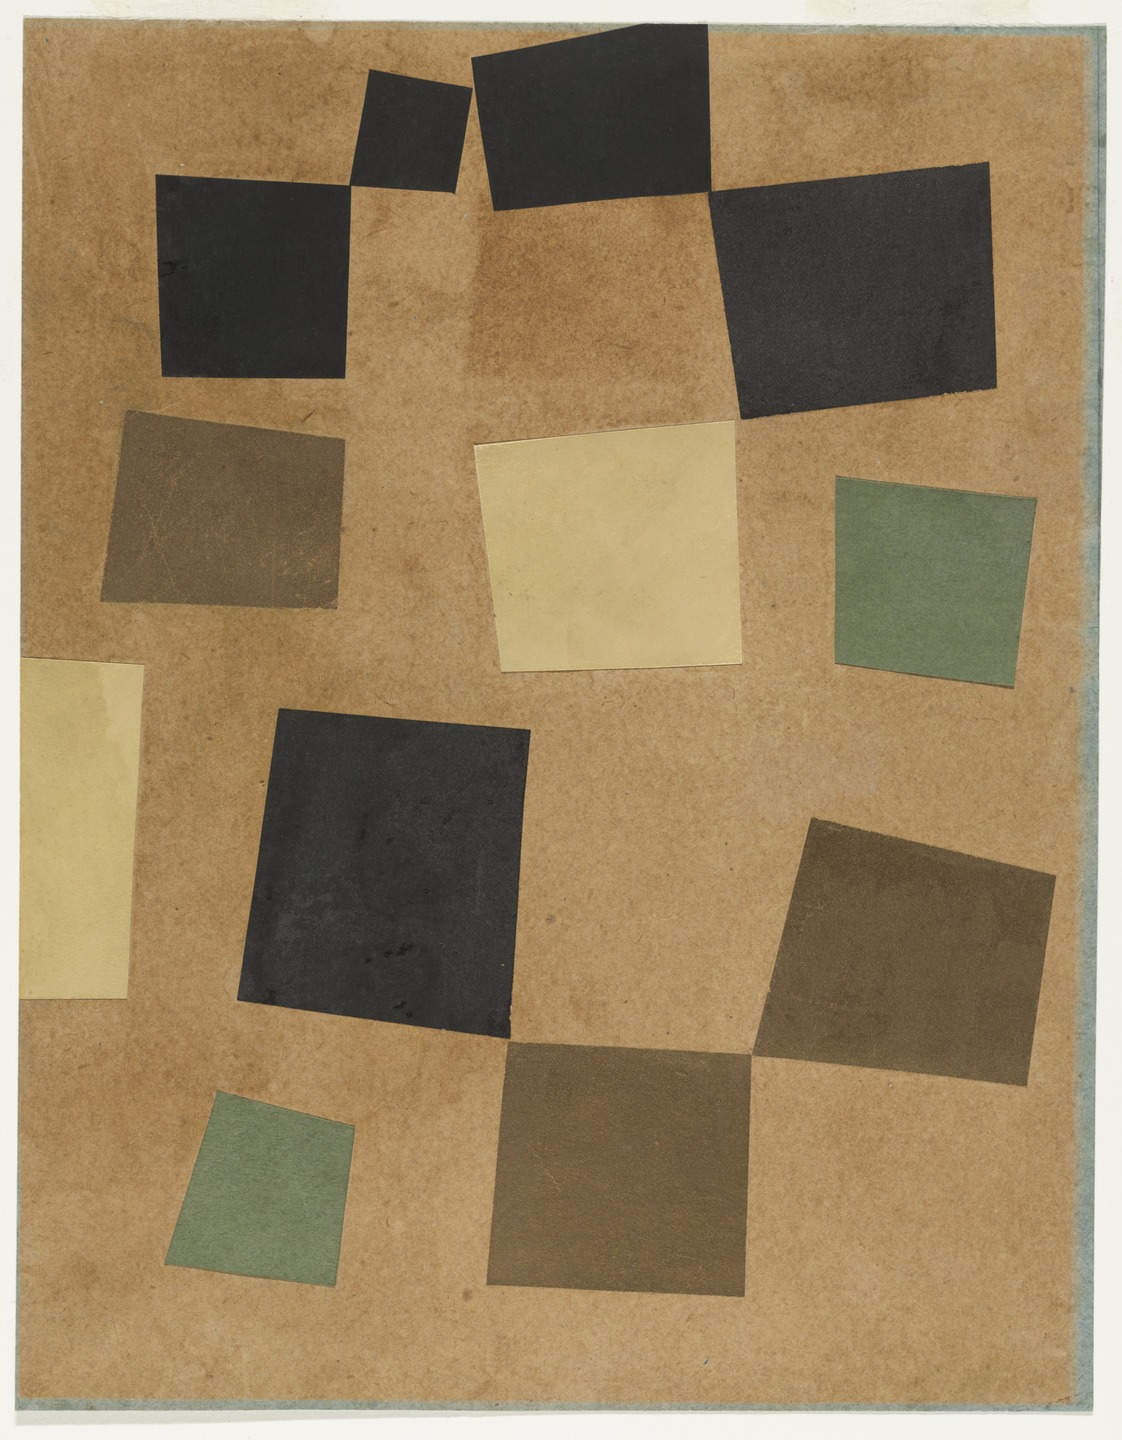 Jean (Hans) Arp,  Untitled (Collage with Squares Arranged according to the Laws of Chance) , 1917, Museum of Modern Art, New York.